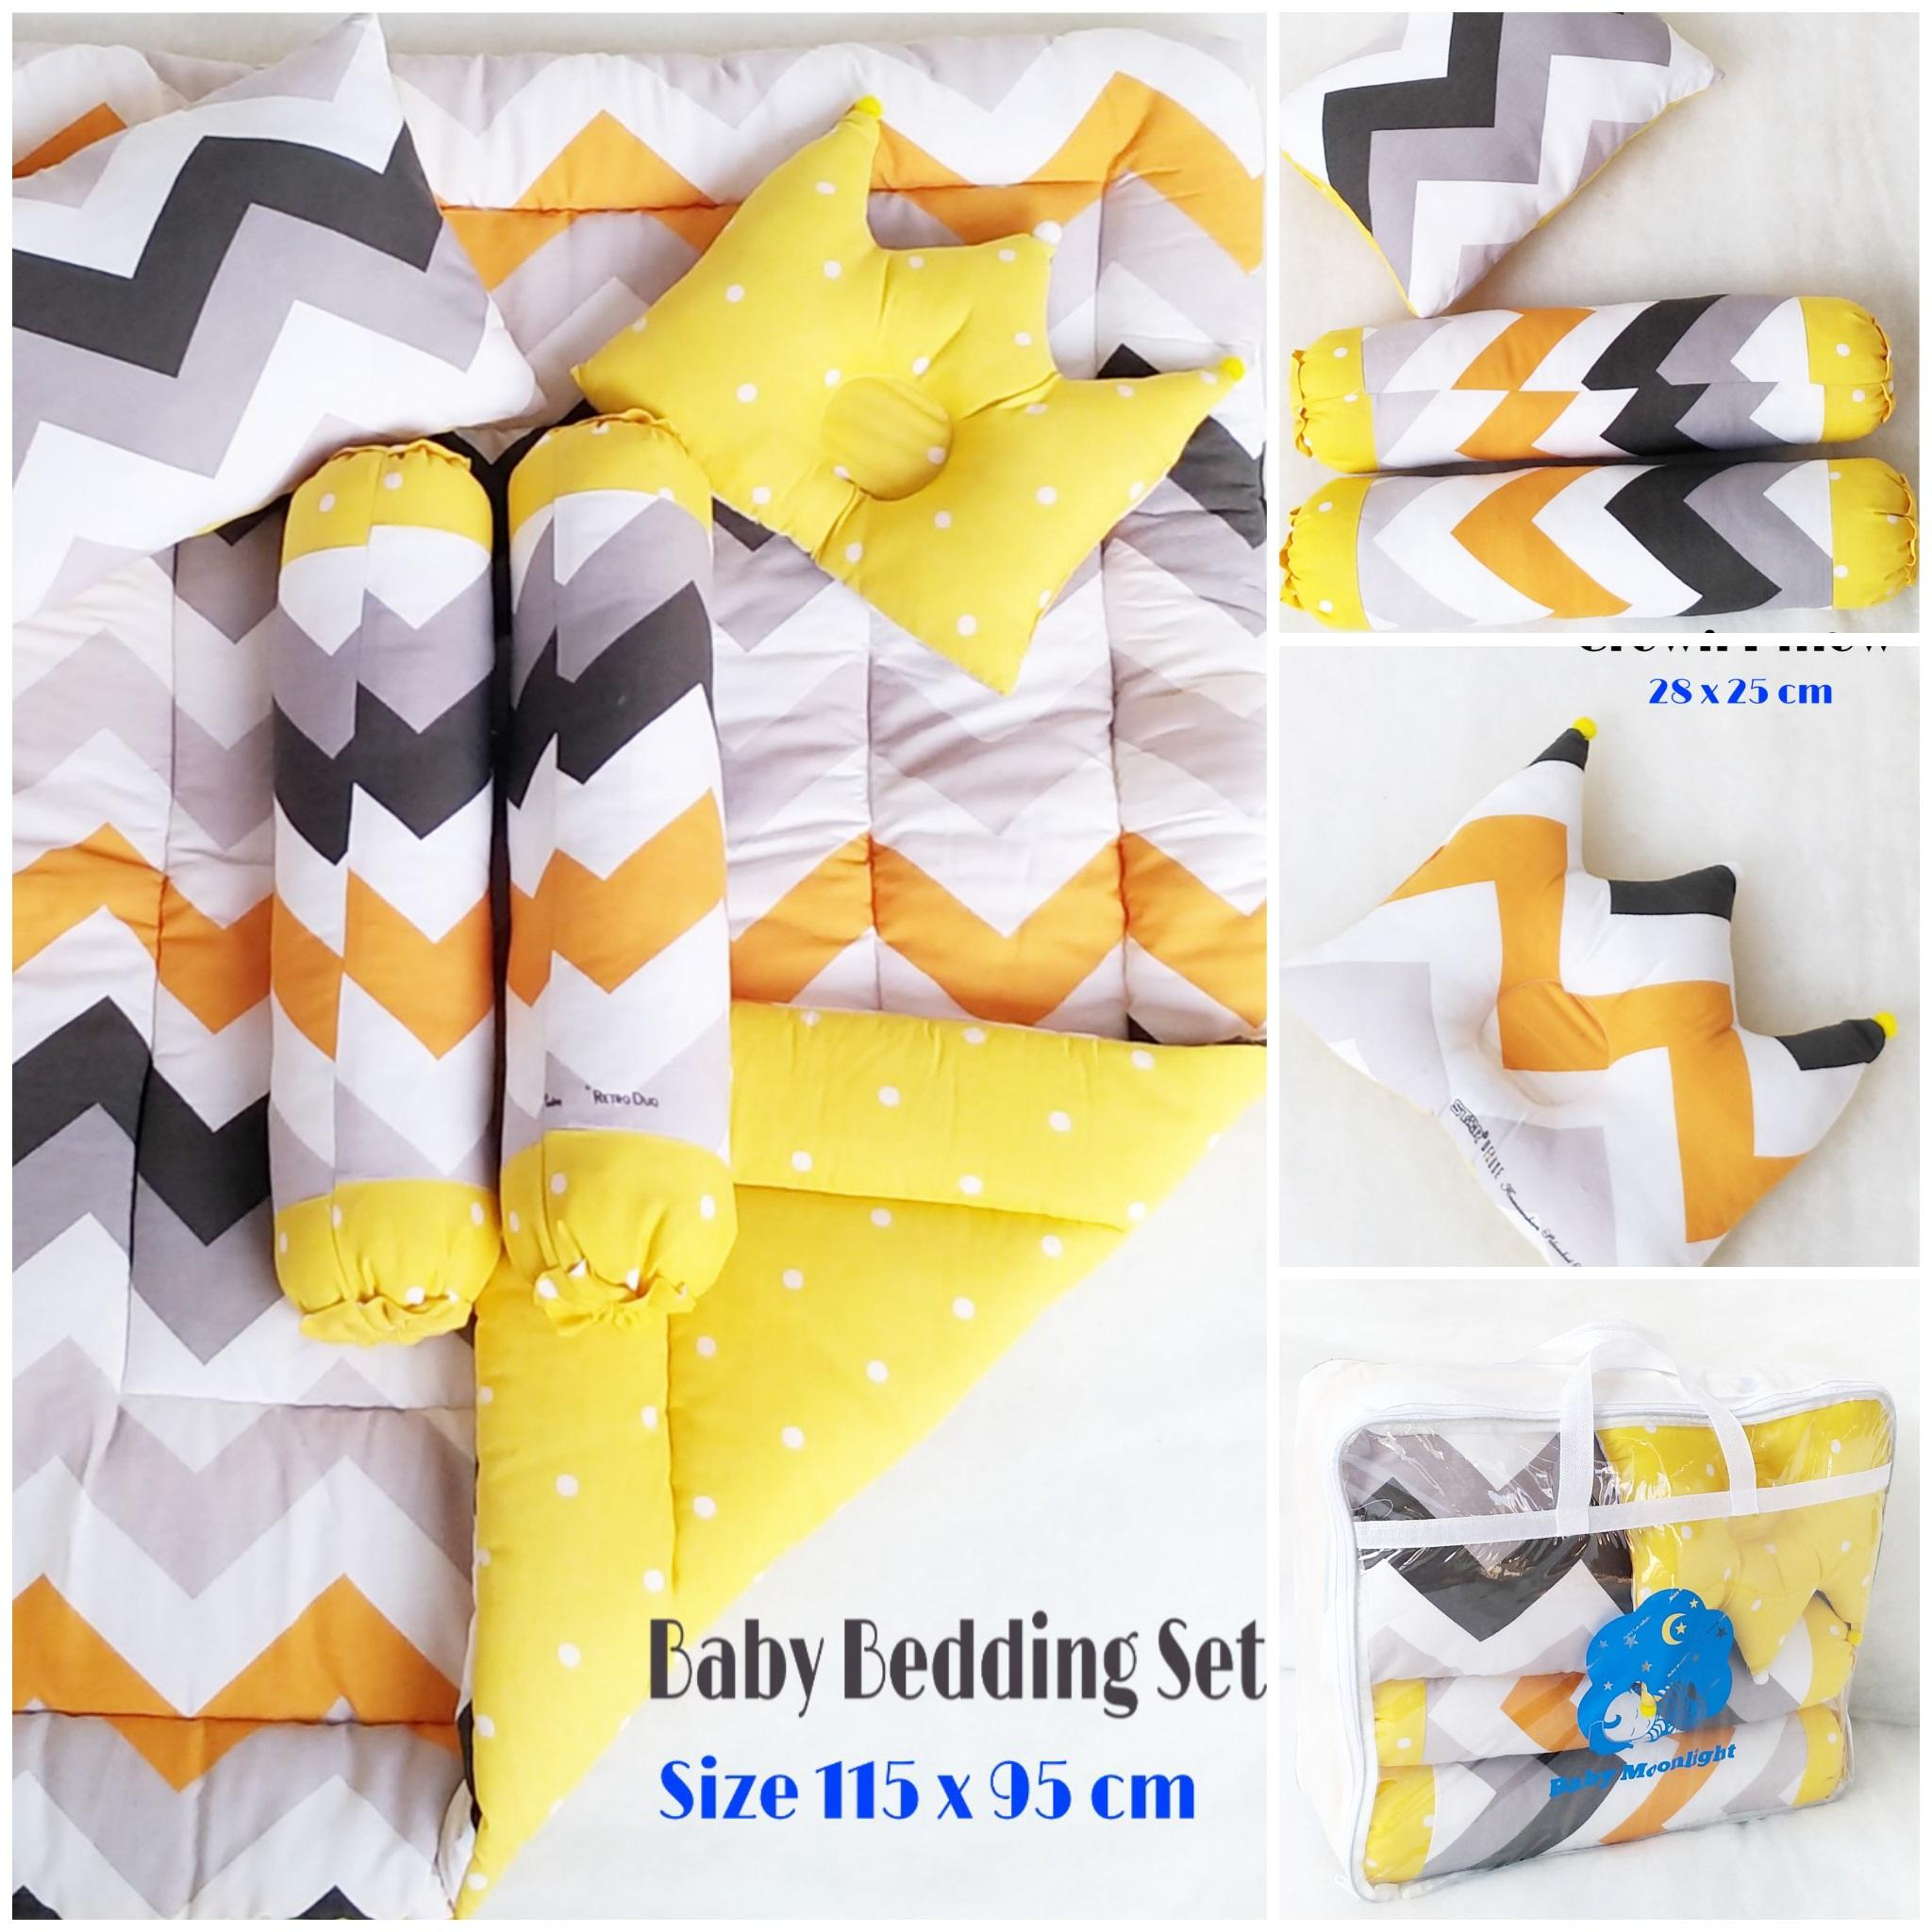 Baby Bedding Set - Retro Duo Yellow By Babymoonlighthouse.